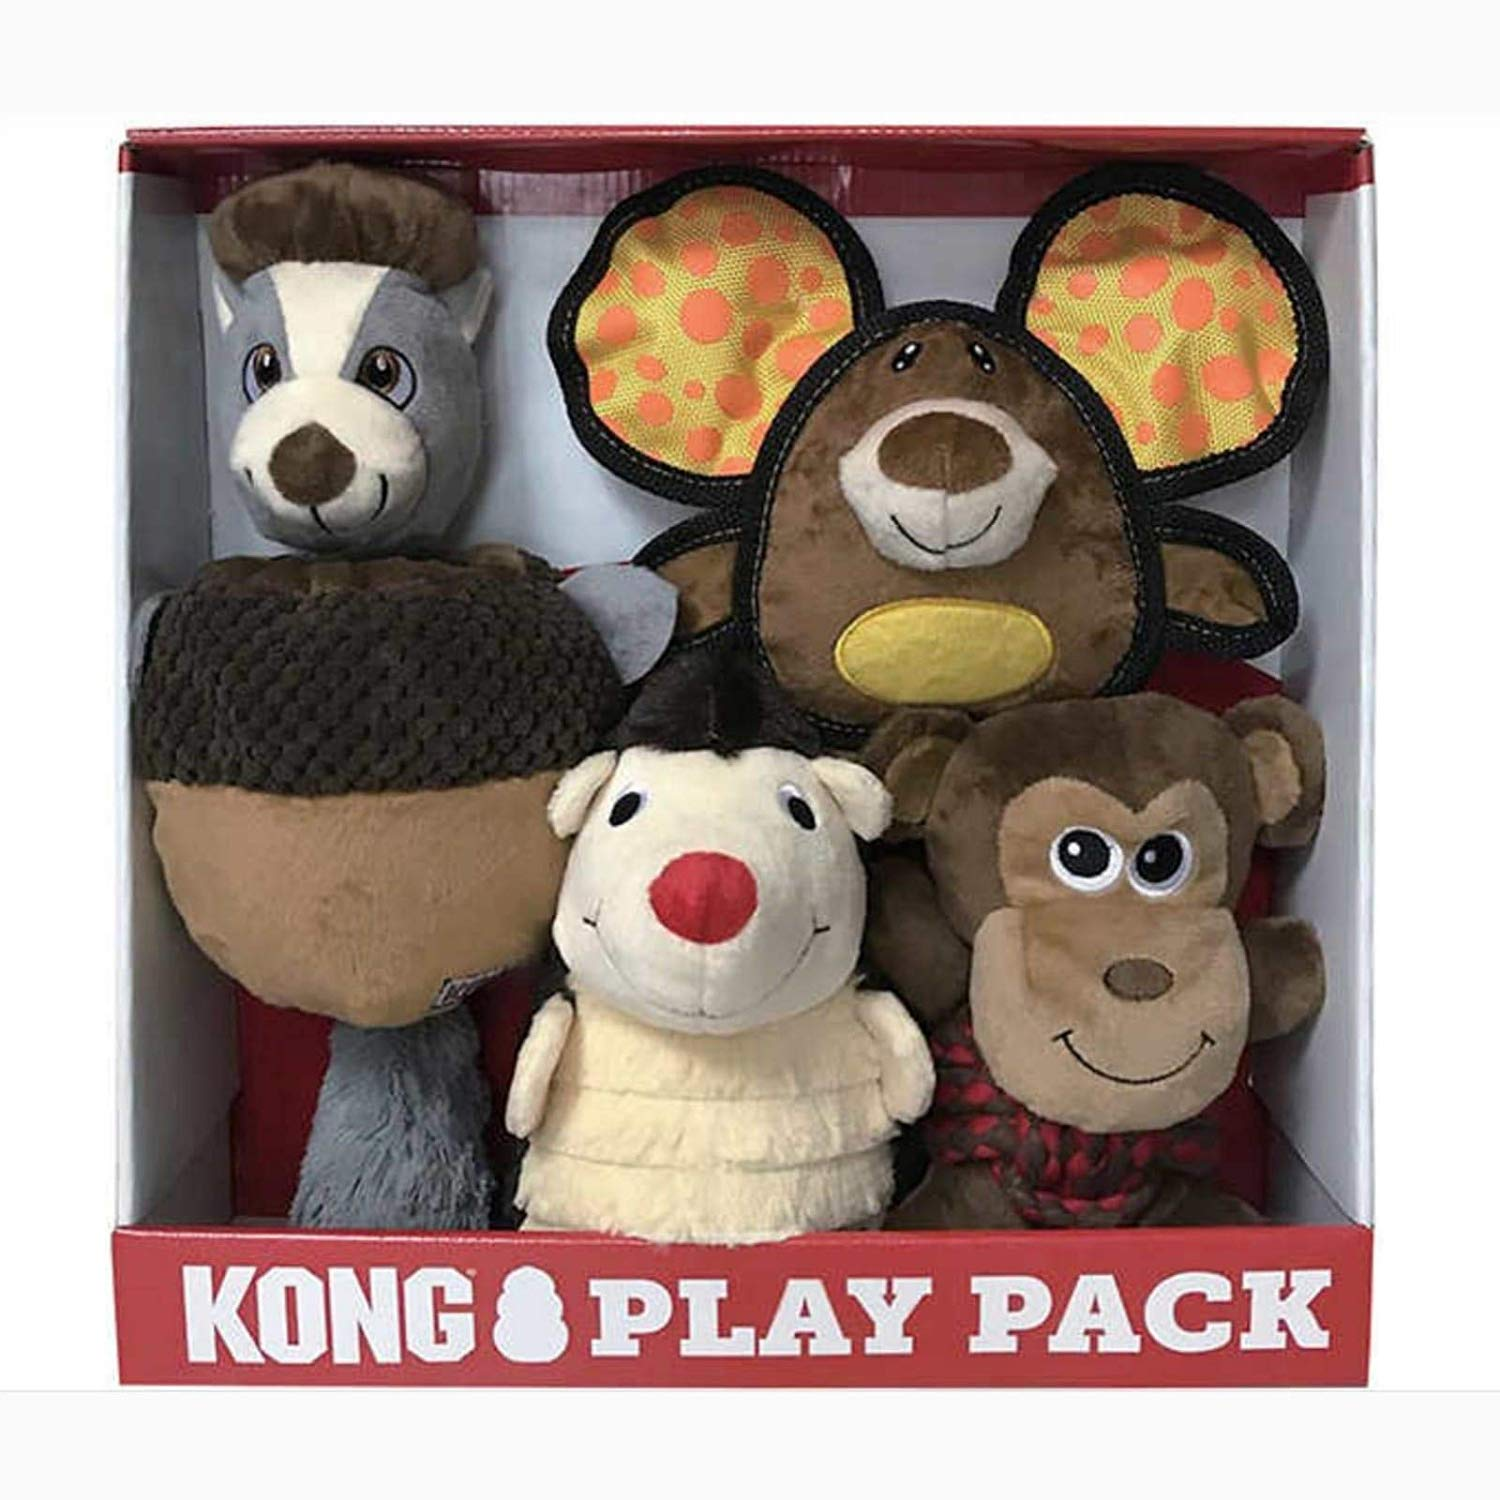 KONG Play Pack, 4 Full Size Dog Toys. Hiderz, Ears, Weave, Layerz by KONG